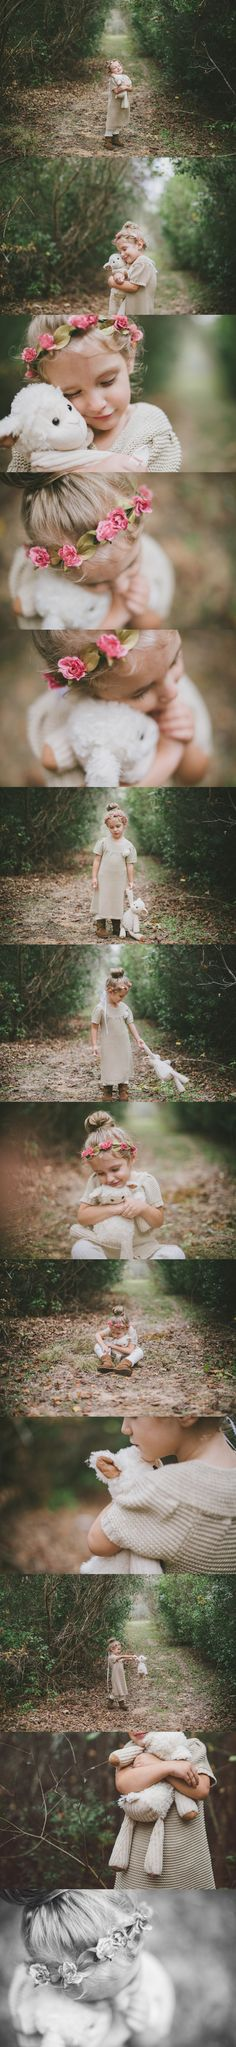 The best memories of being young and having that favorite lovey toy...beautifully captured! Jessi Field Photography | Children's Portraits Inspiration